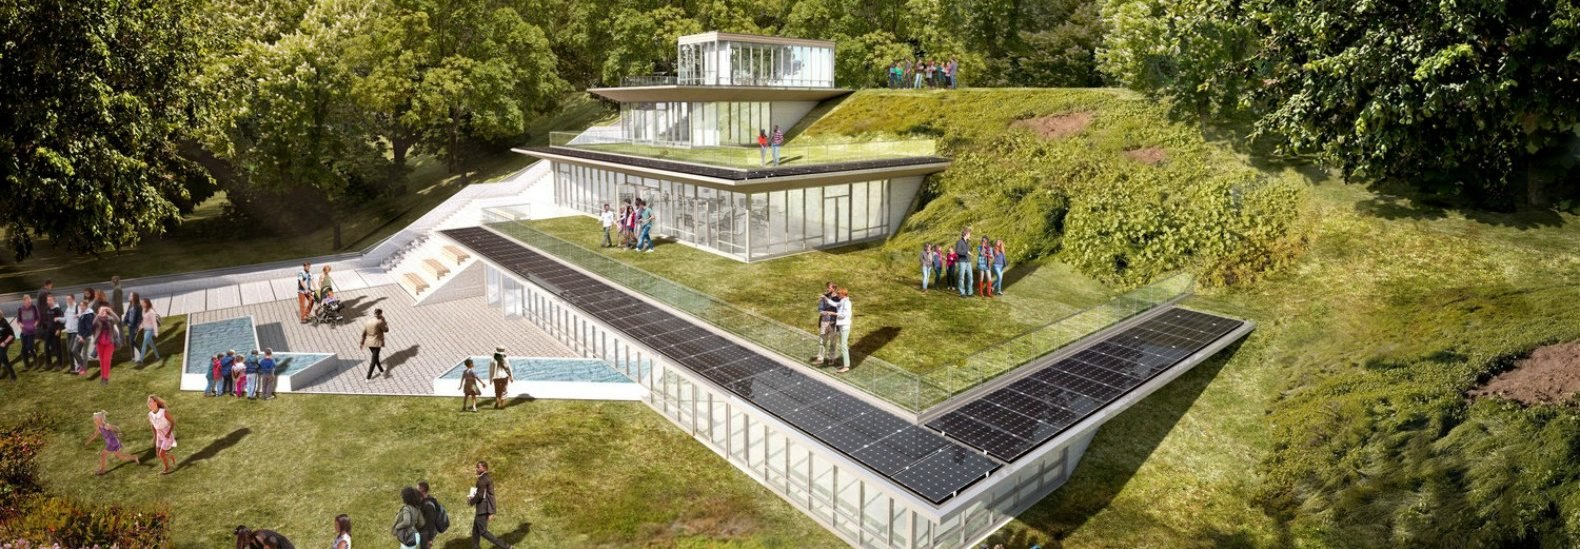 Winners of the 2018 Architecture at Zero competition announced